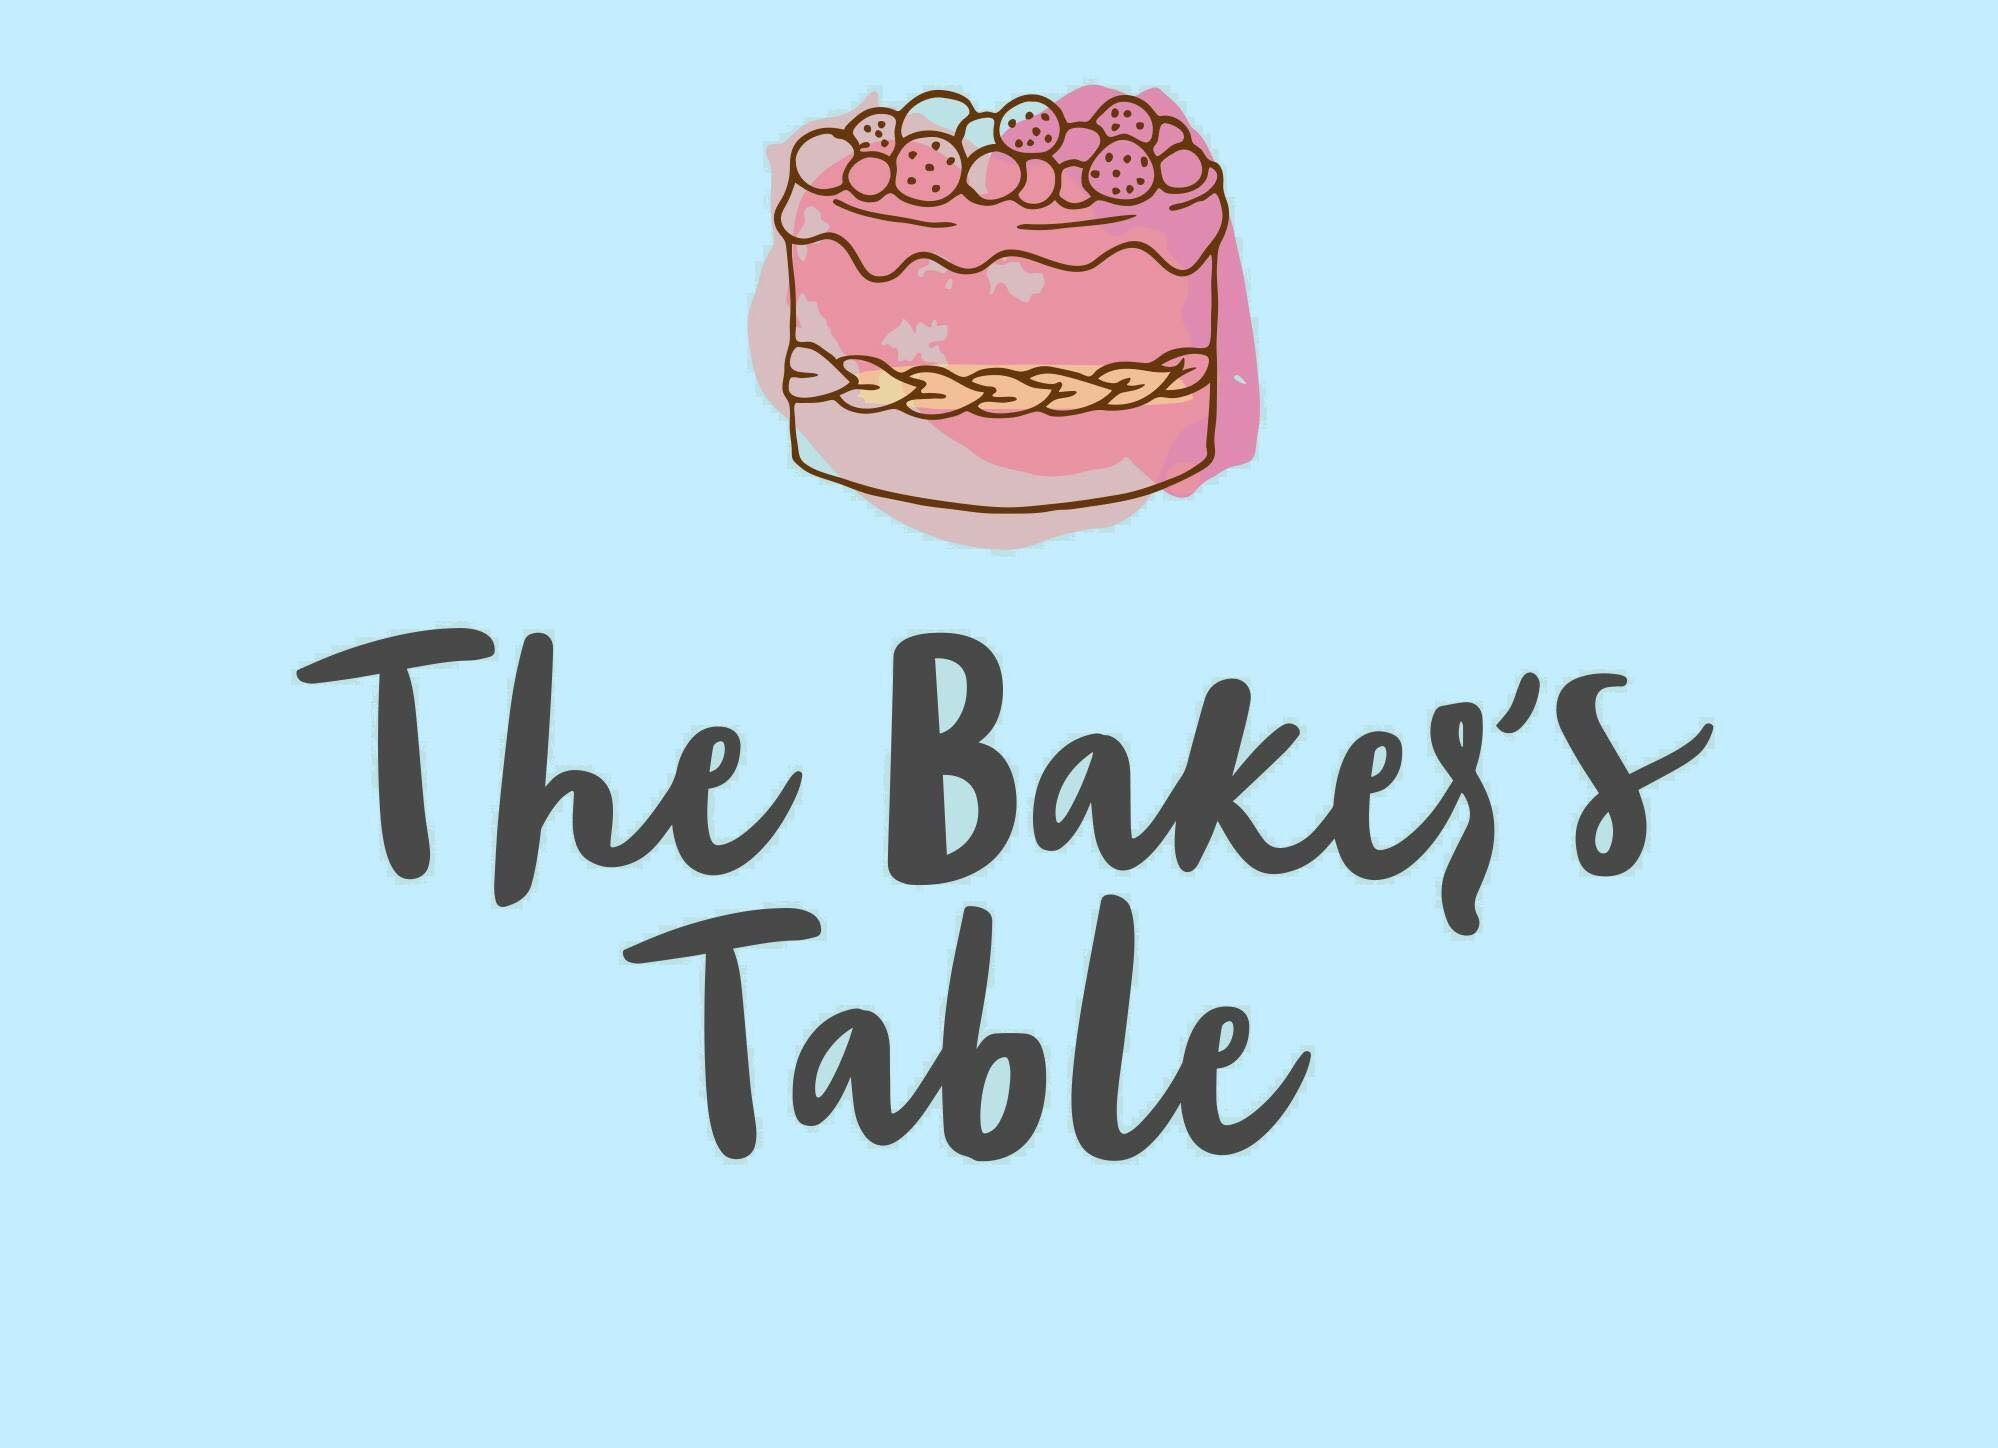 The Bakers Table - Highly recommended cakes, Pastry Chef.Bespoke cakes, muffins and traybakes. Weighed, whisked and baked at home. Specialising in Vegan & Gluten free bakes